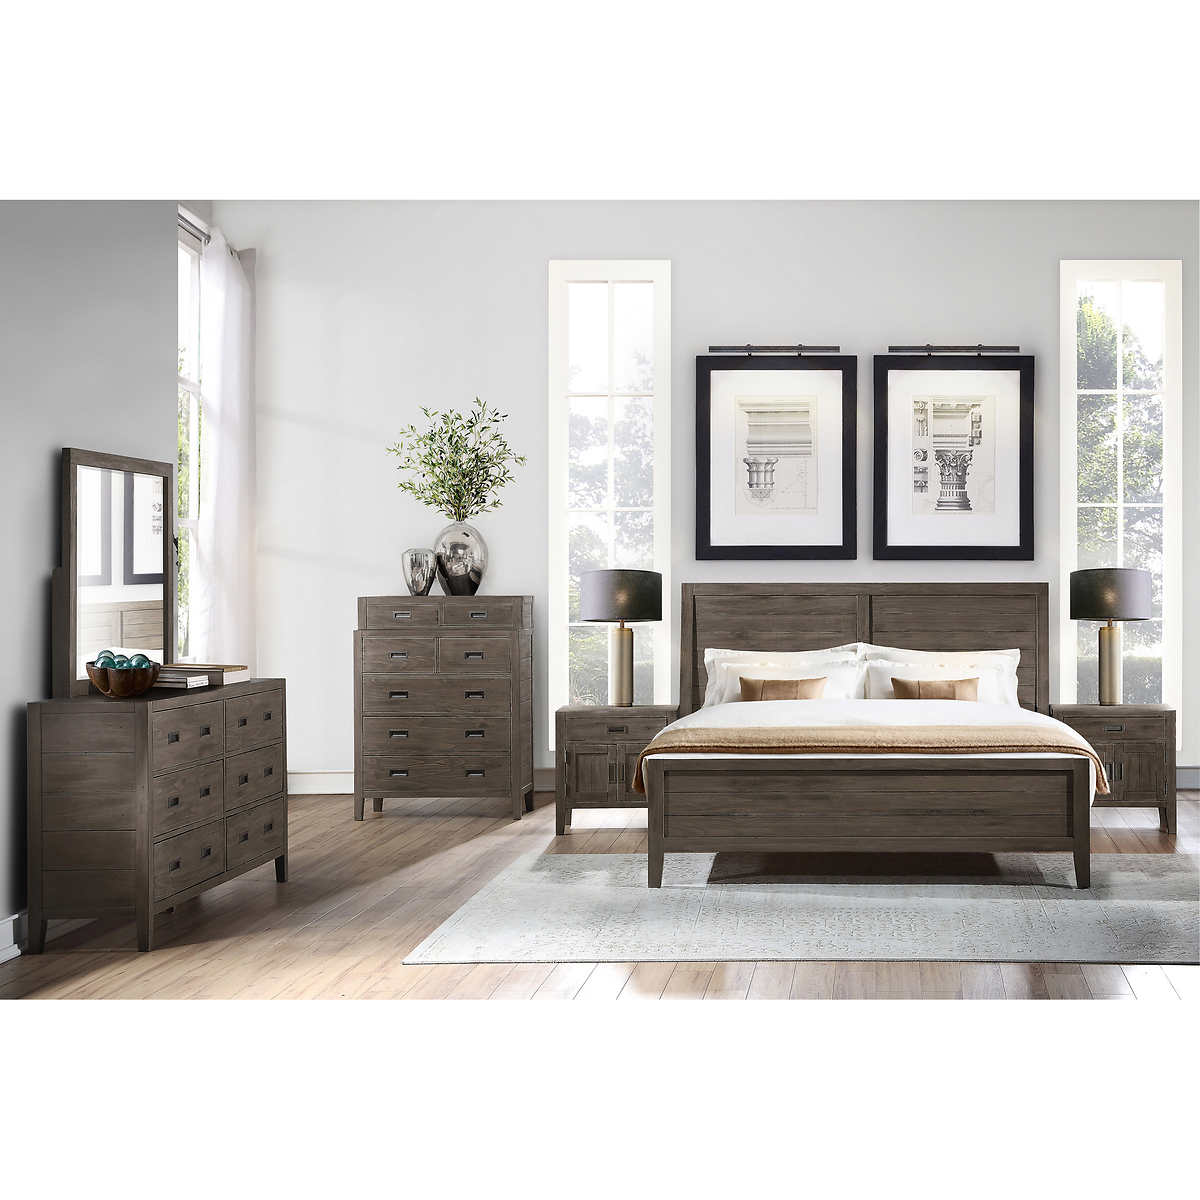 Clarissa 9-piece King Bedroom Set